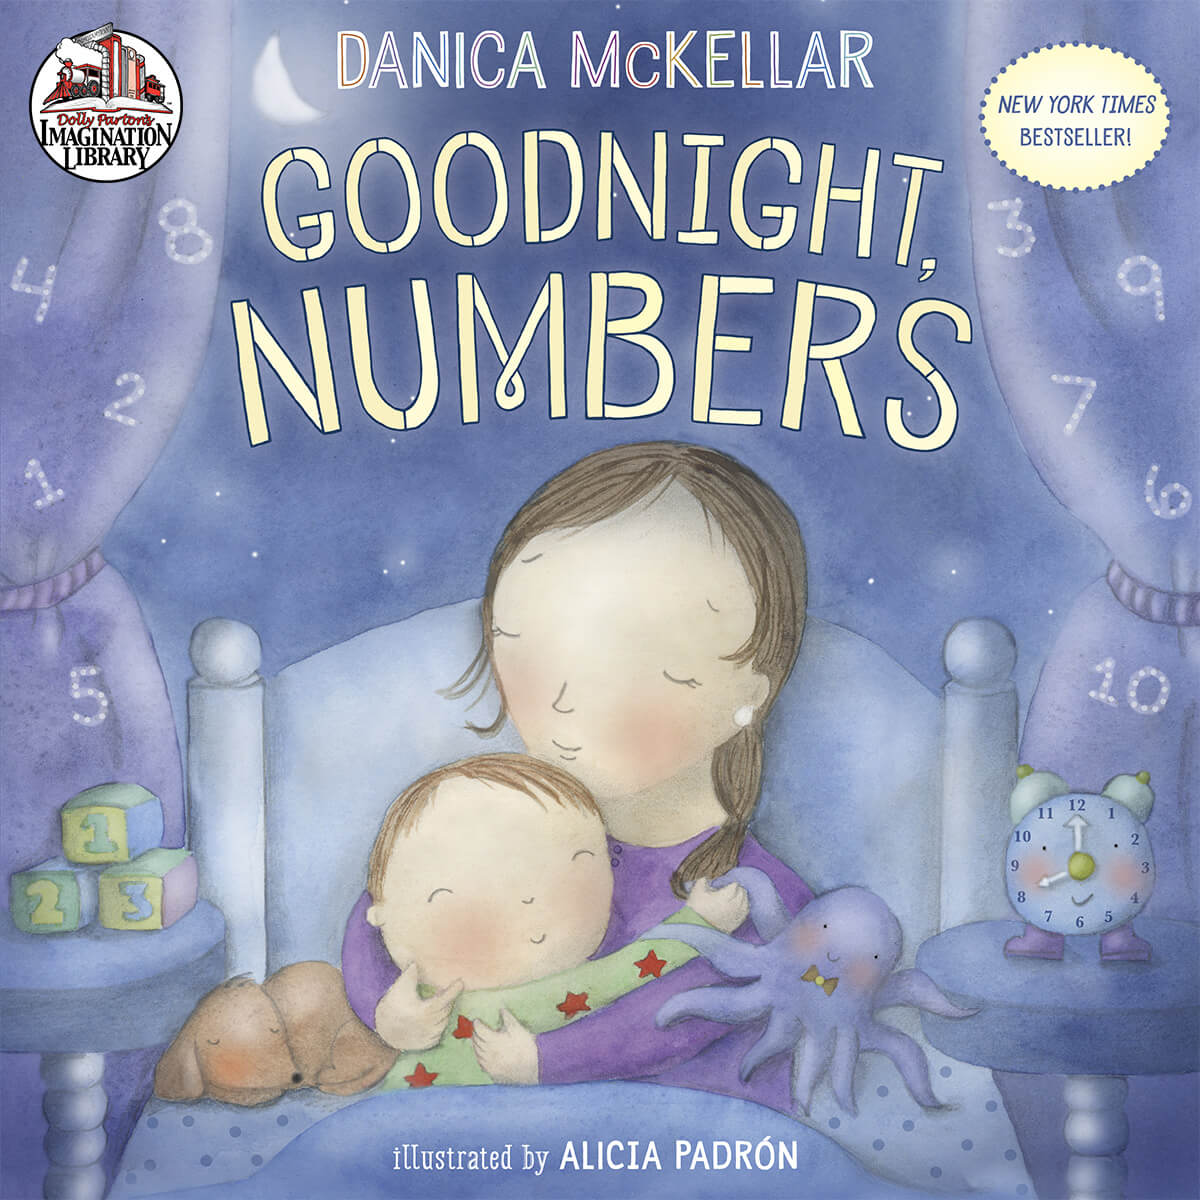 Goodnight Numbers - Dolly Parton's Imagination Library